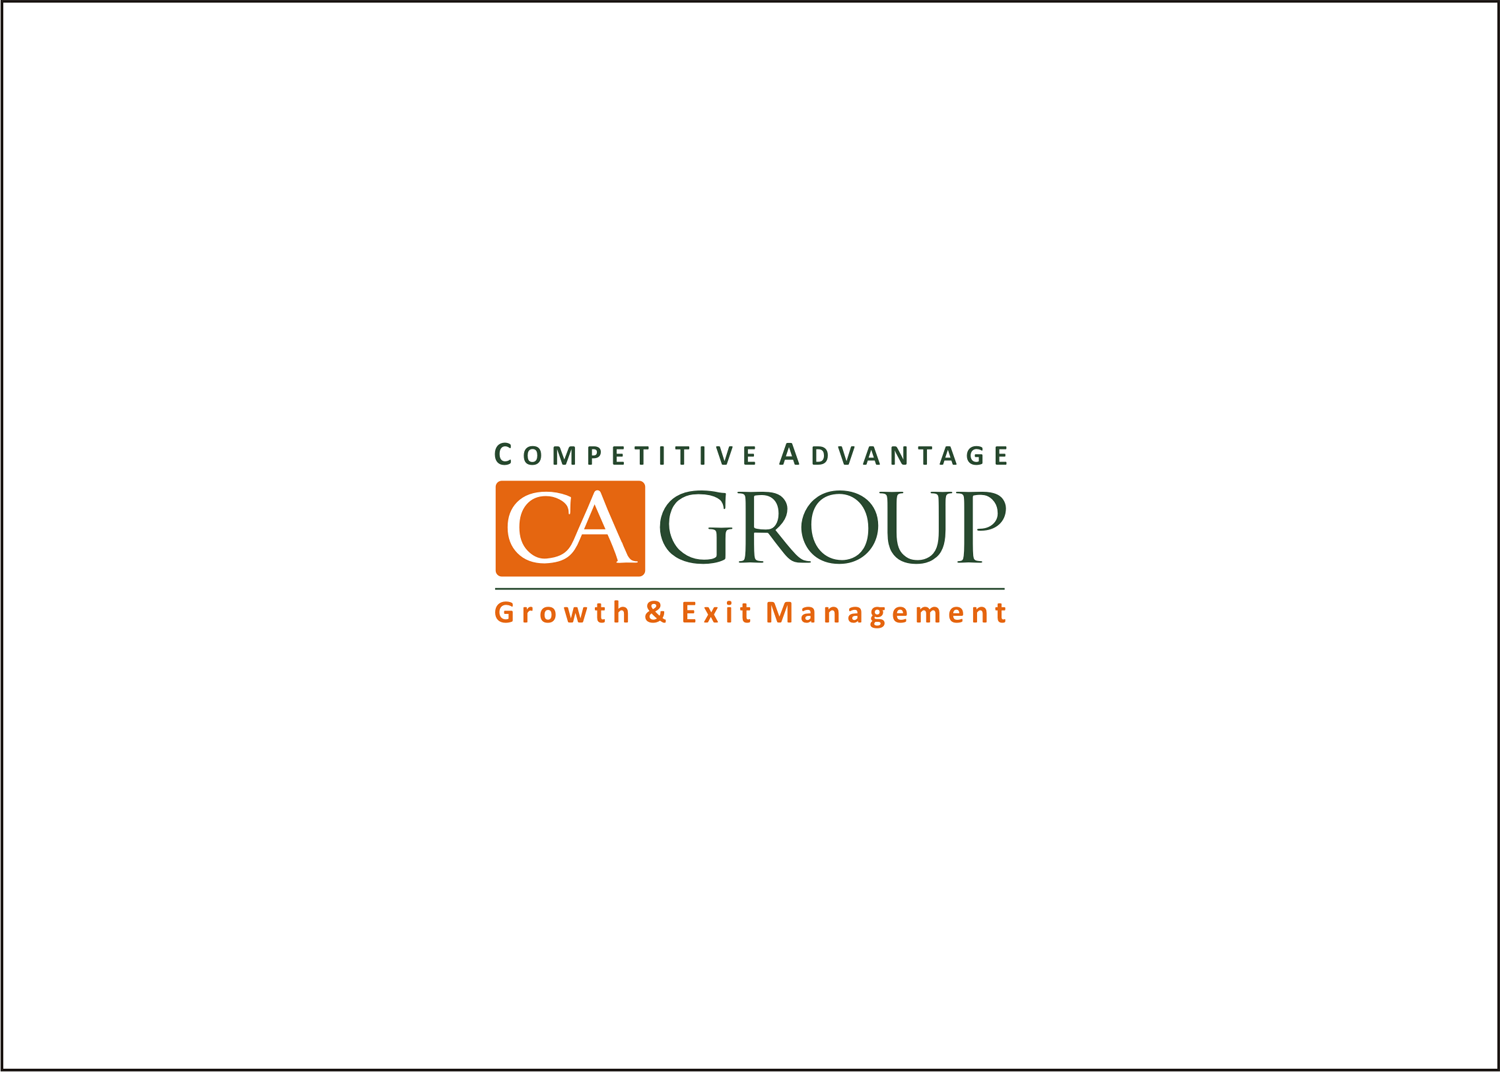 New logo wanted for COMPETITIVE ADVANTAGE GROUP